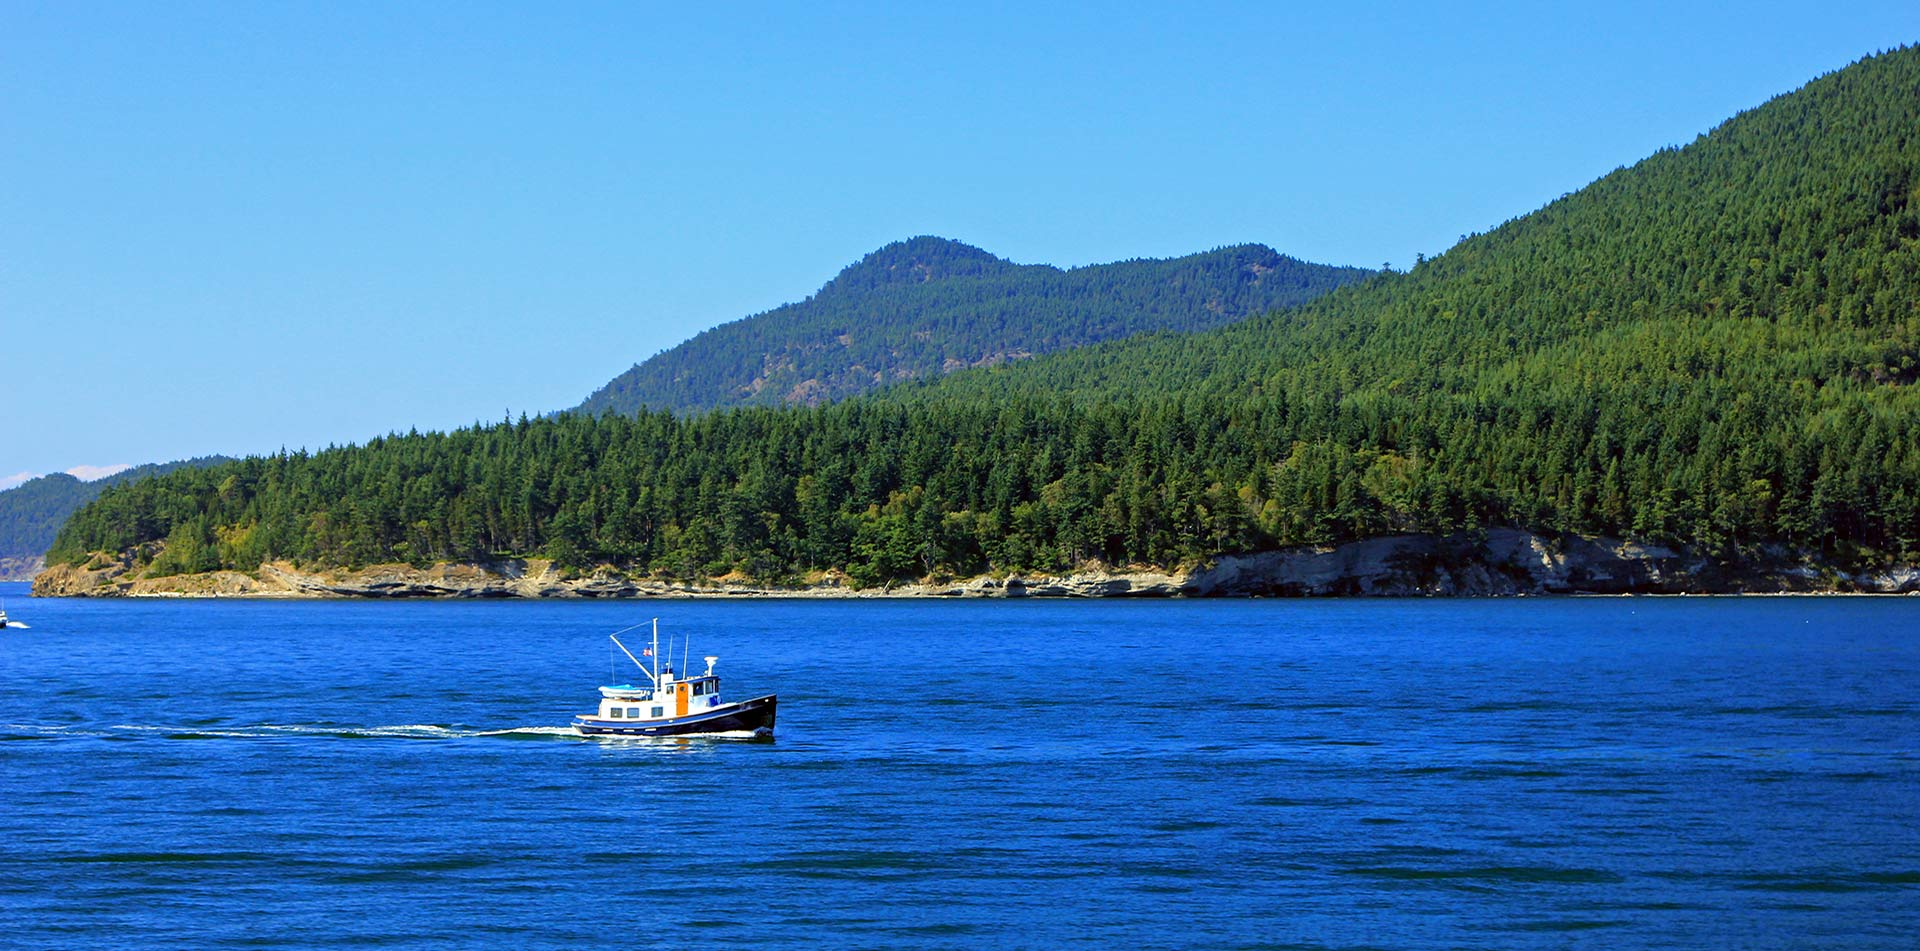 US Pacific Northwest Puget Sound San Juan Island fishing boat mountain forest coastline - luxury vacation destinations